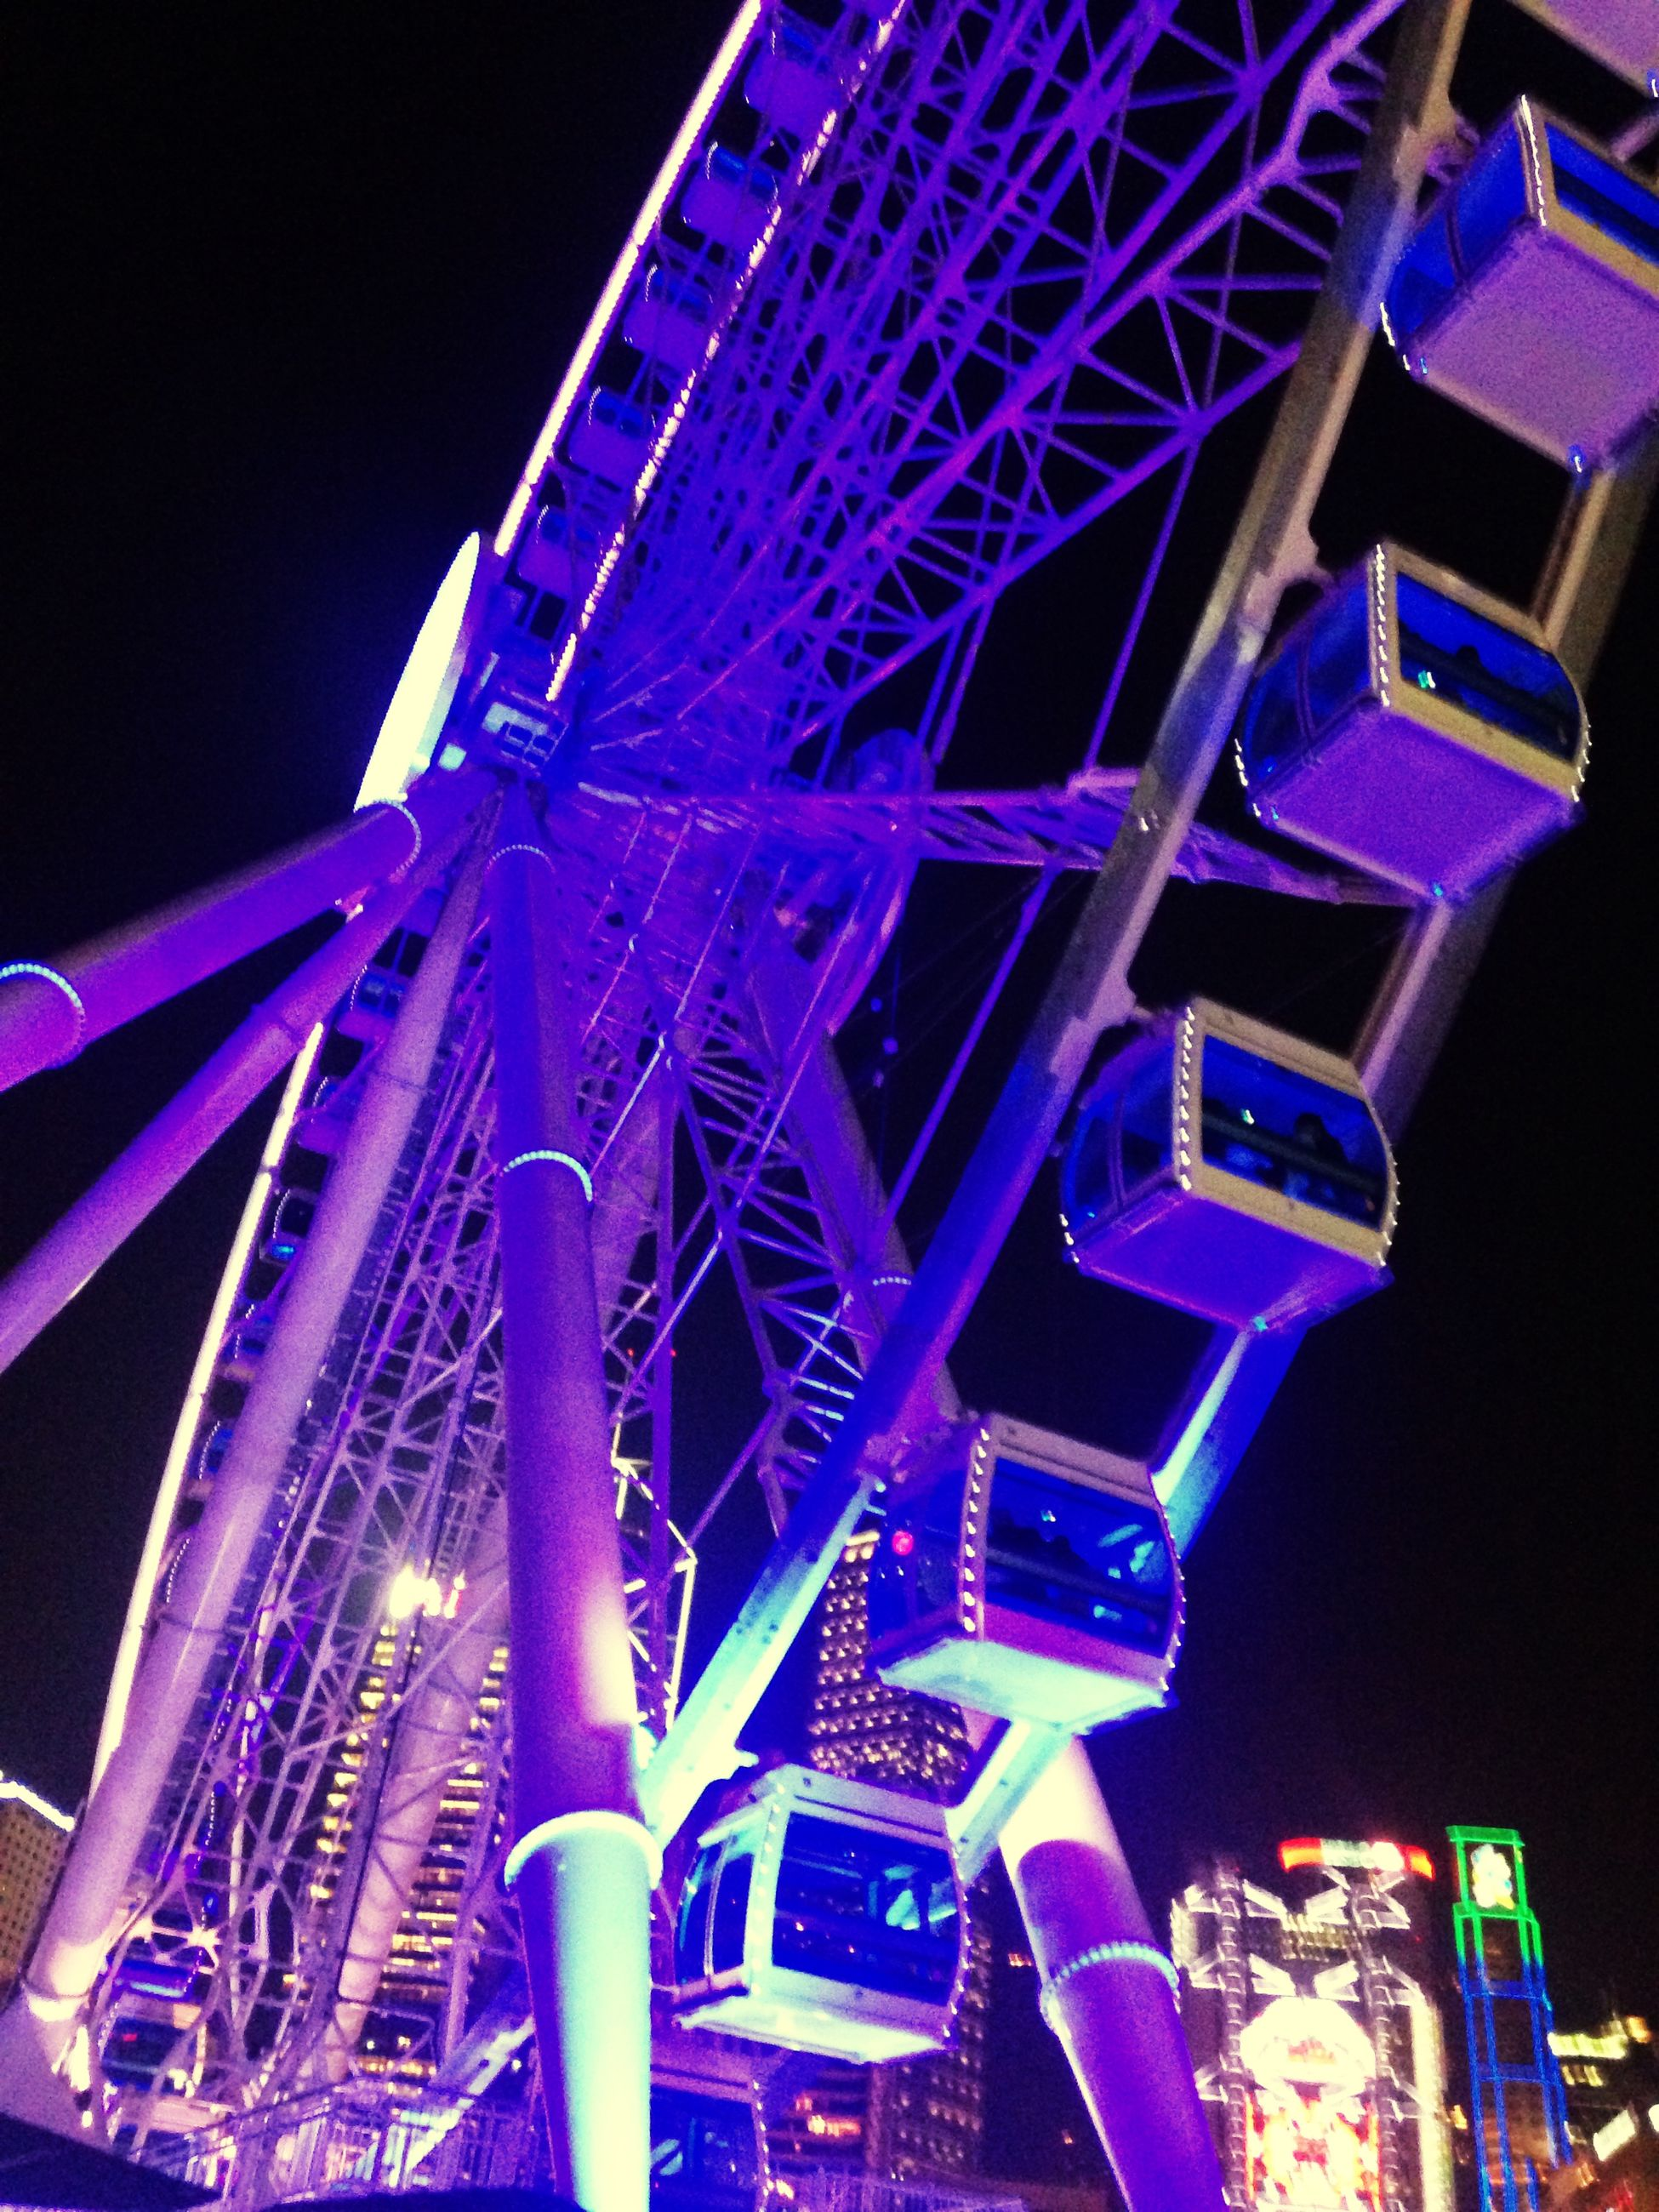 low angle view, architecture, built structure, illuminated, night, building exterior, city, tall - high, tower, modern, arts culture and entertainment, blue, travel destinations, capital cities, famous place, skyscraper, sky, amusement park, lighting equipment, outdoors